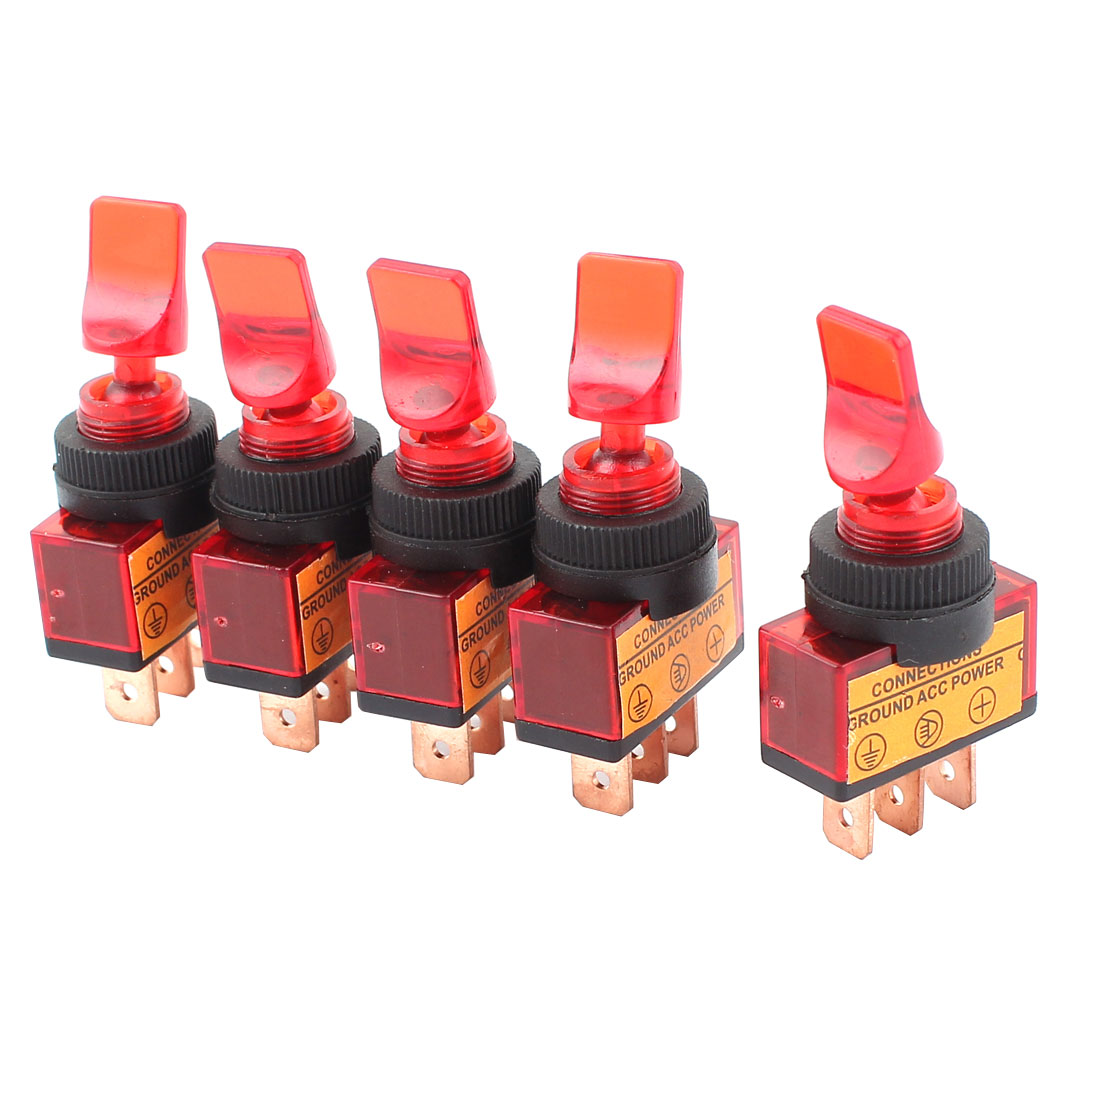 5 Pcs DC 12V 20A 12mm Thread Panel Mount SPST 2-Position ON/OFF Red Toggle Switch